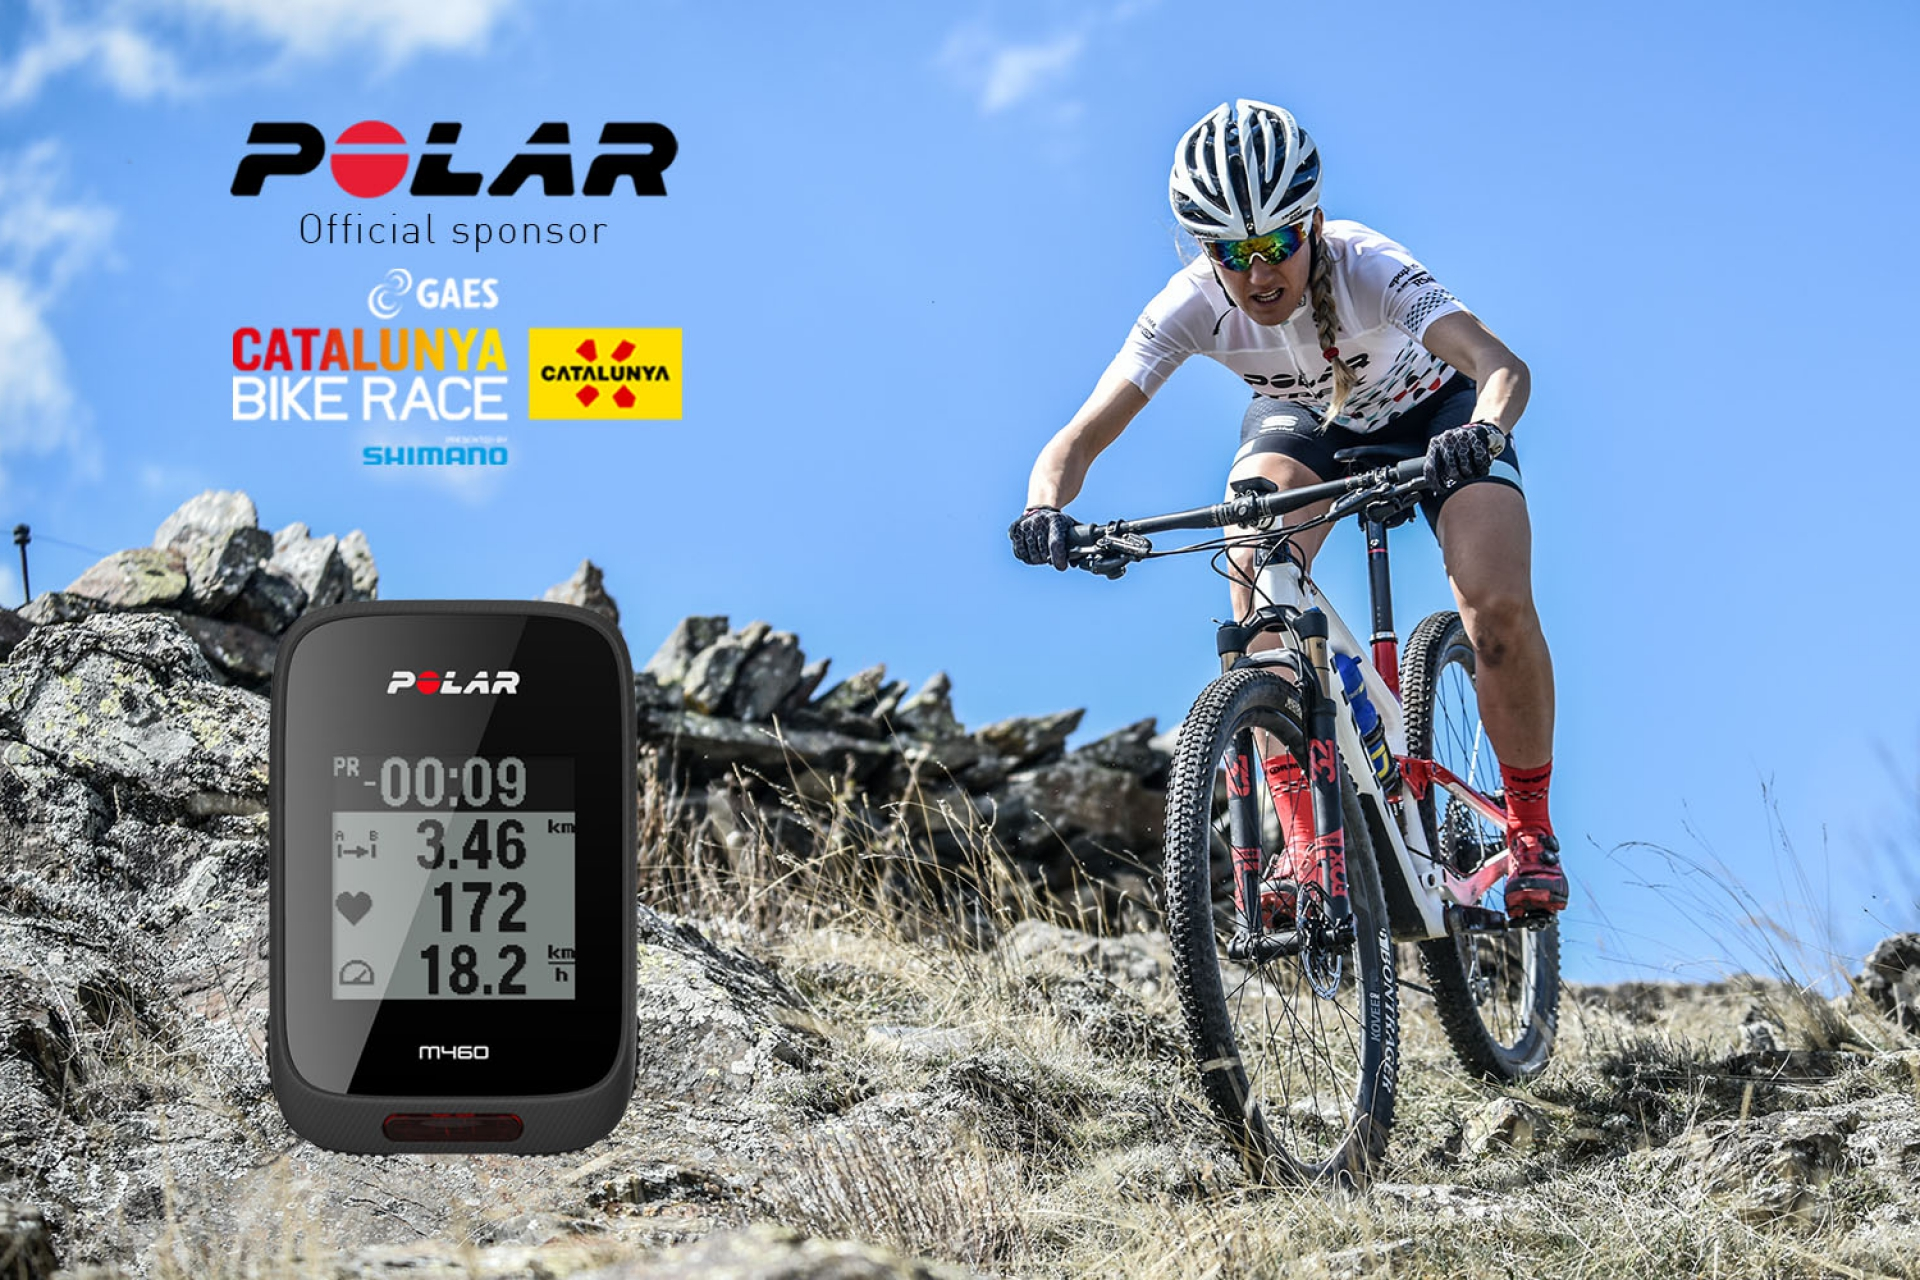 Polar brings many surprises to GAES Catalunya Bike Race presented by Shimano